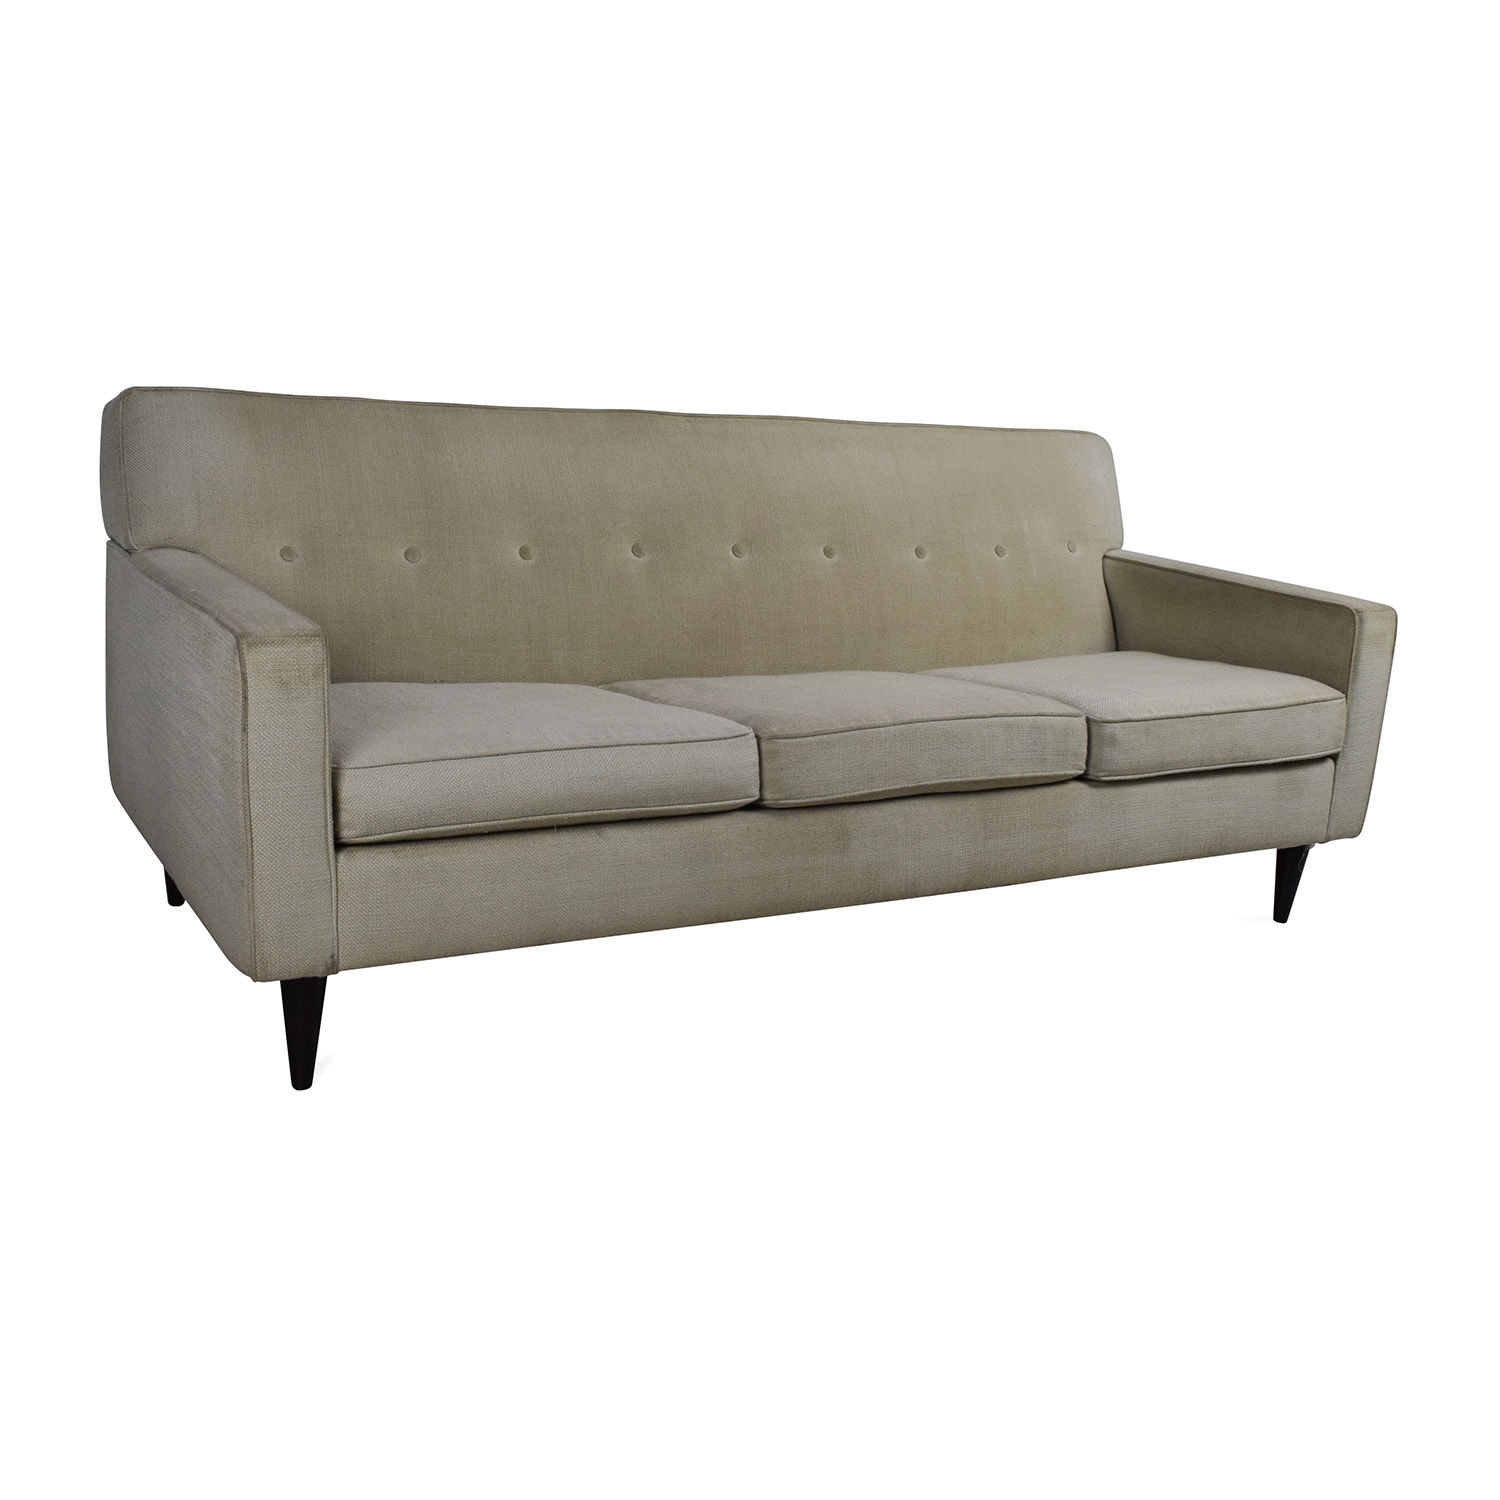 Stunning Macy's Furniture Sofa Plan